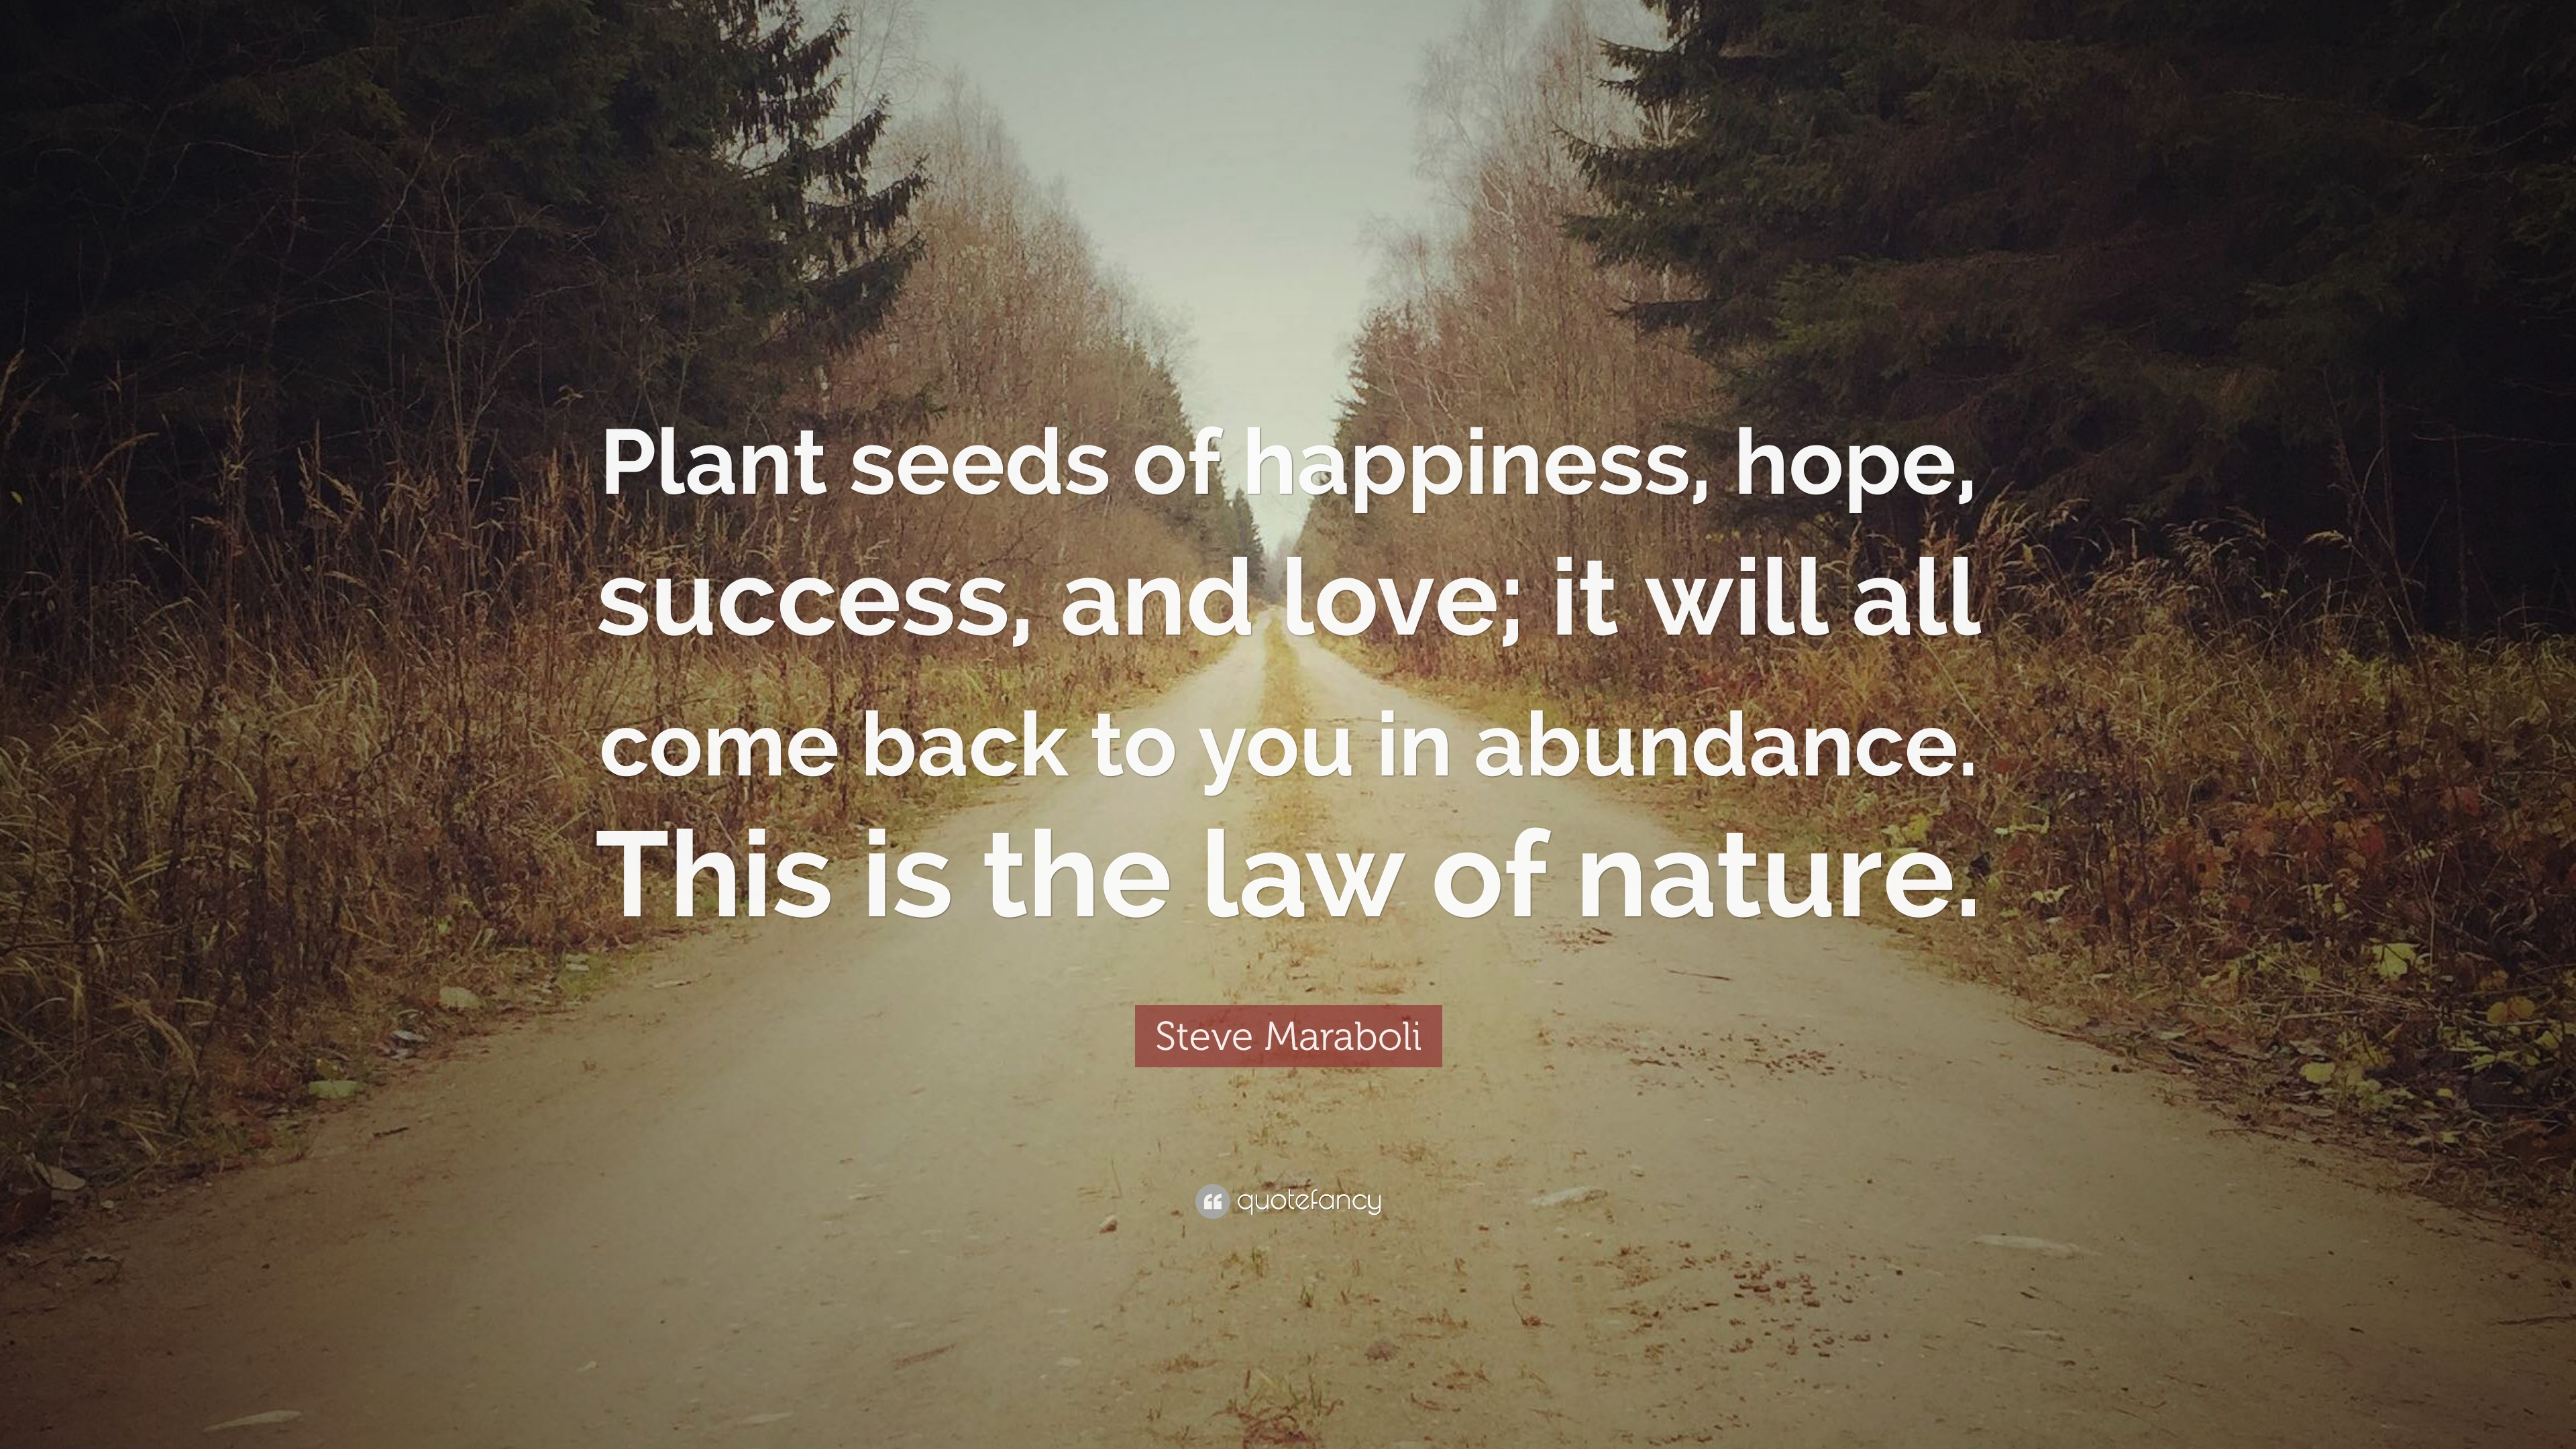 Steve Maraboli Quote Plant Seeds Of Happiness Hope Success And Love It Will All Come Back